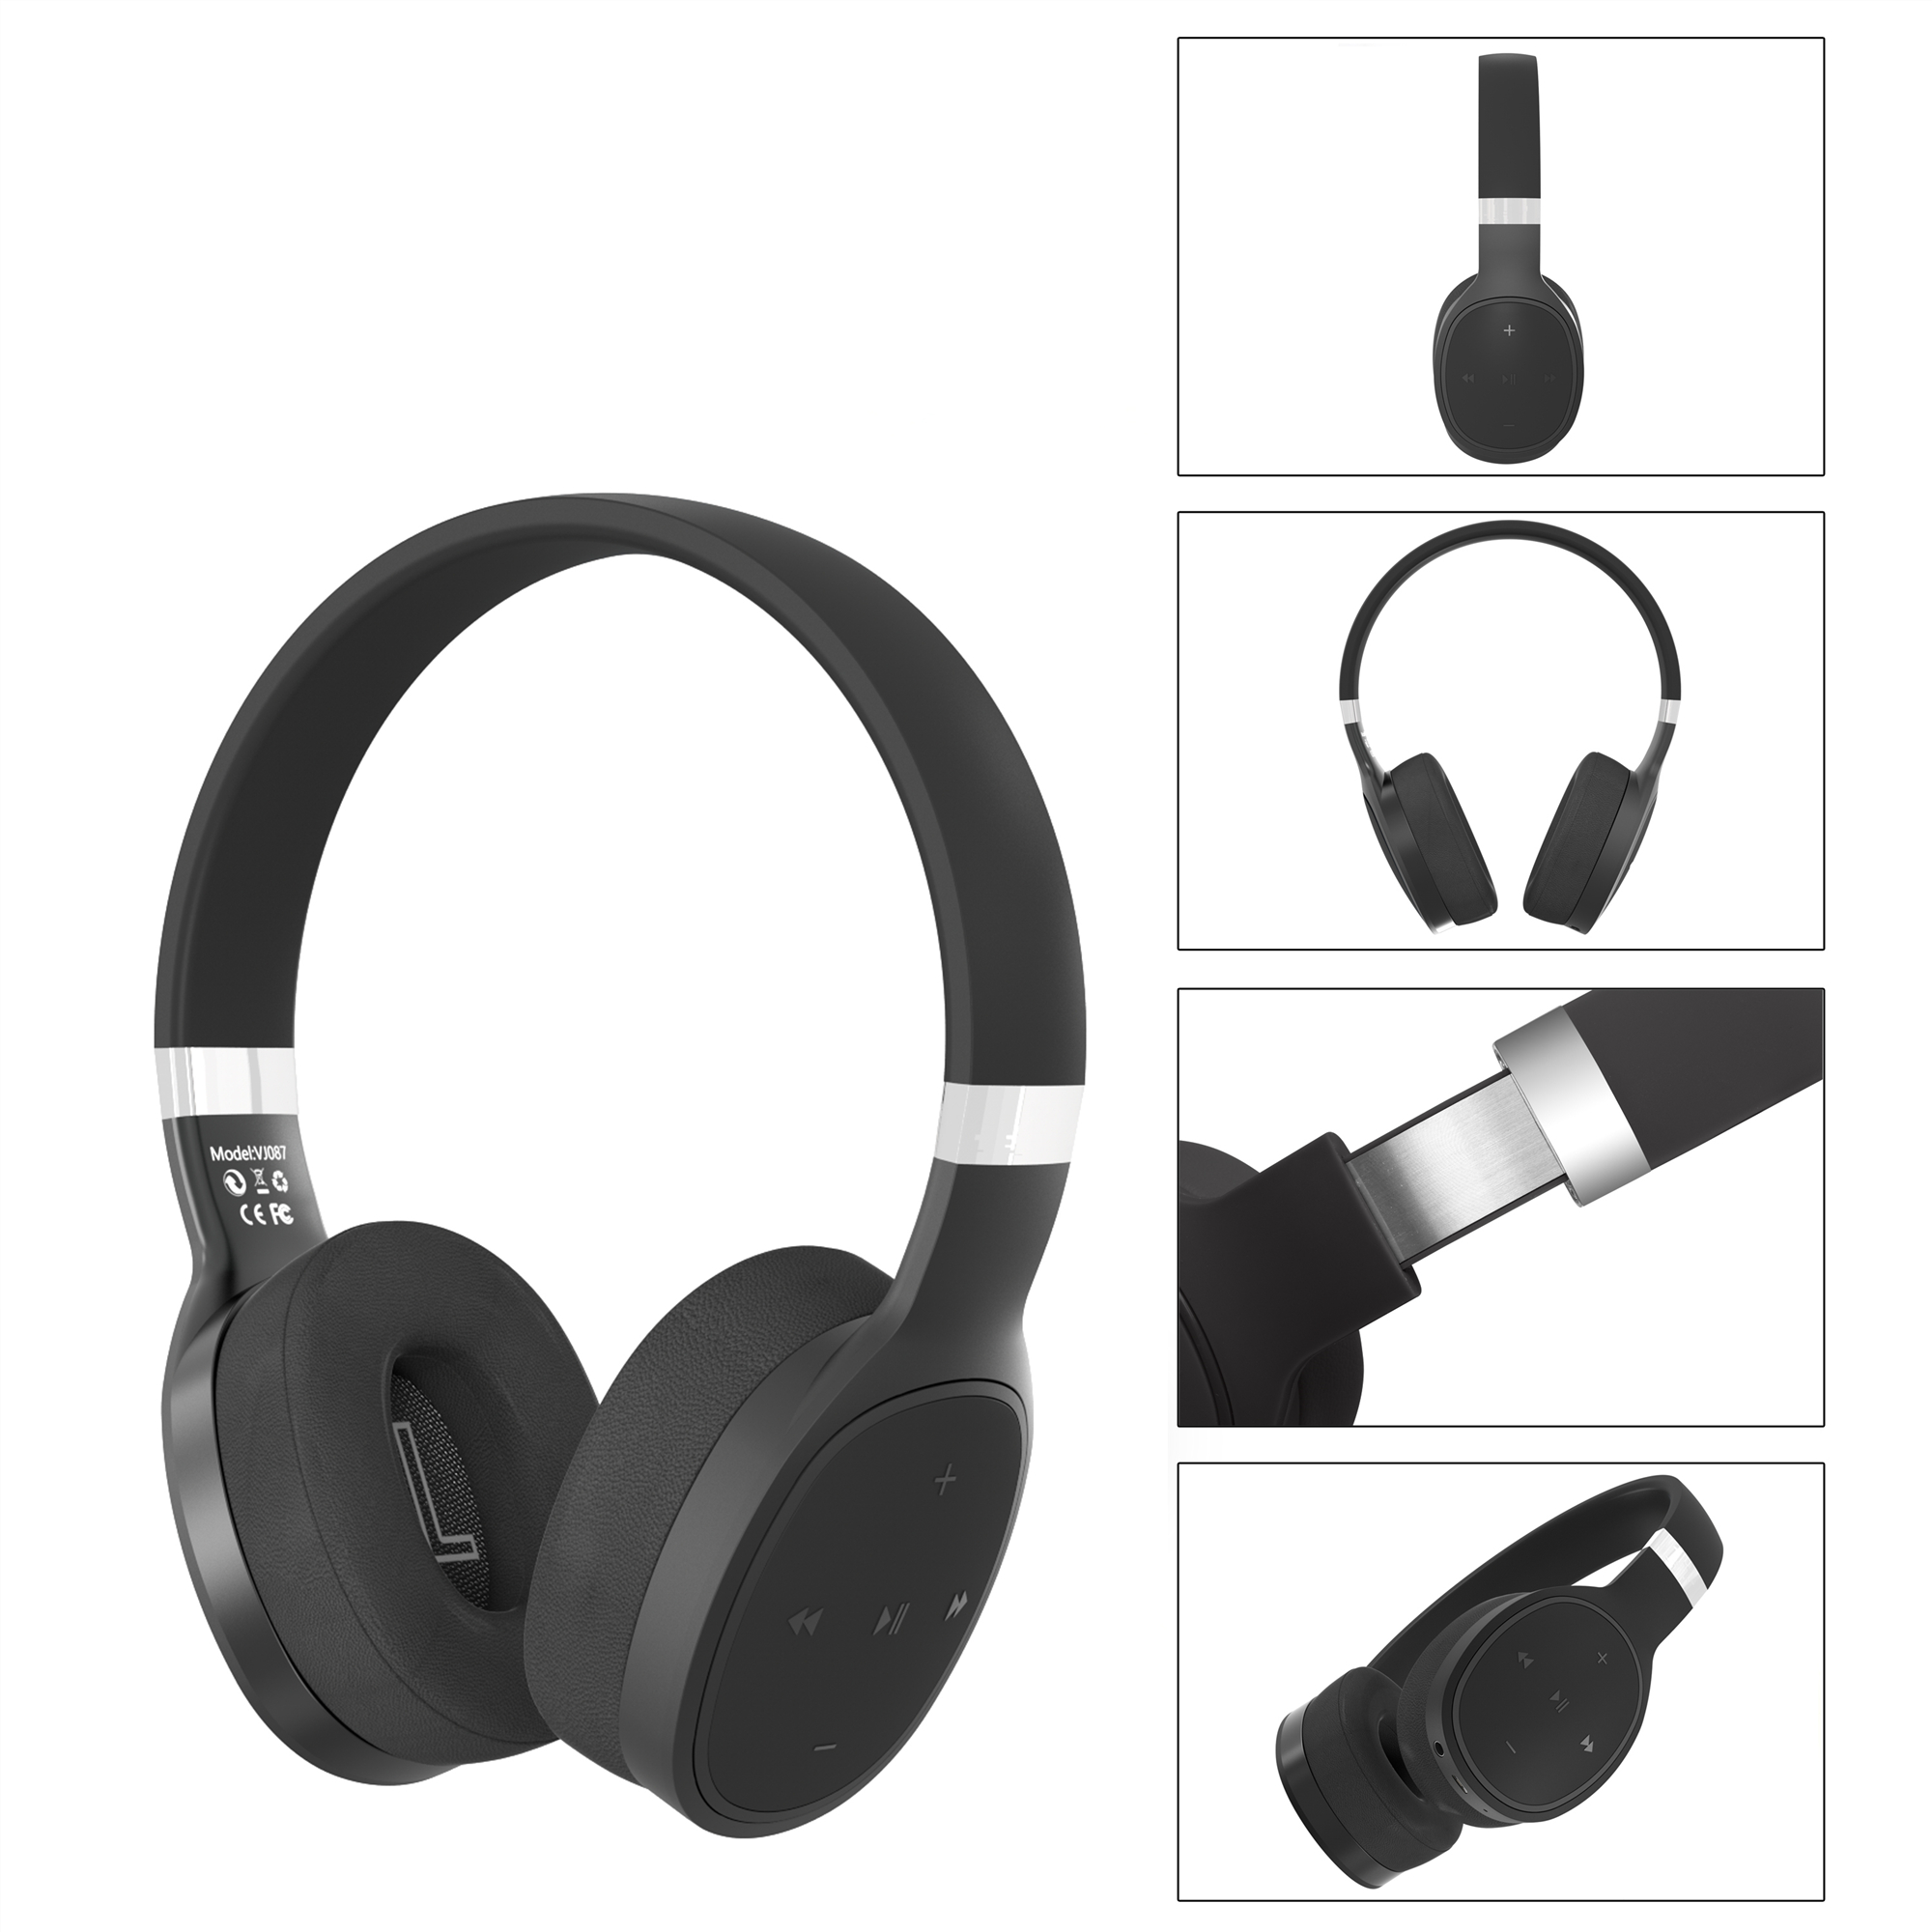 IKOLE Bluetooth 5.0 Wireless Over the Ear Headset Deep Bass Hi-Fi Stereo Sound with rubber, Comfortable to Wearing Headphone 4